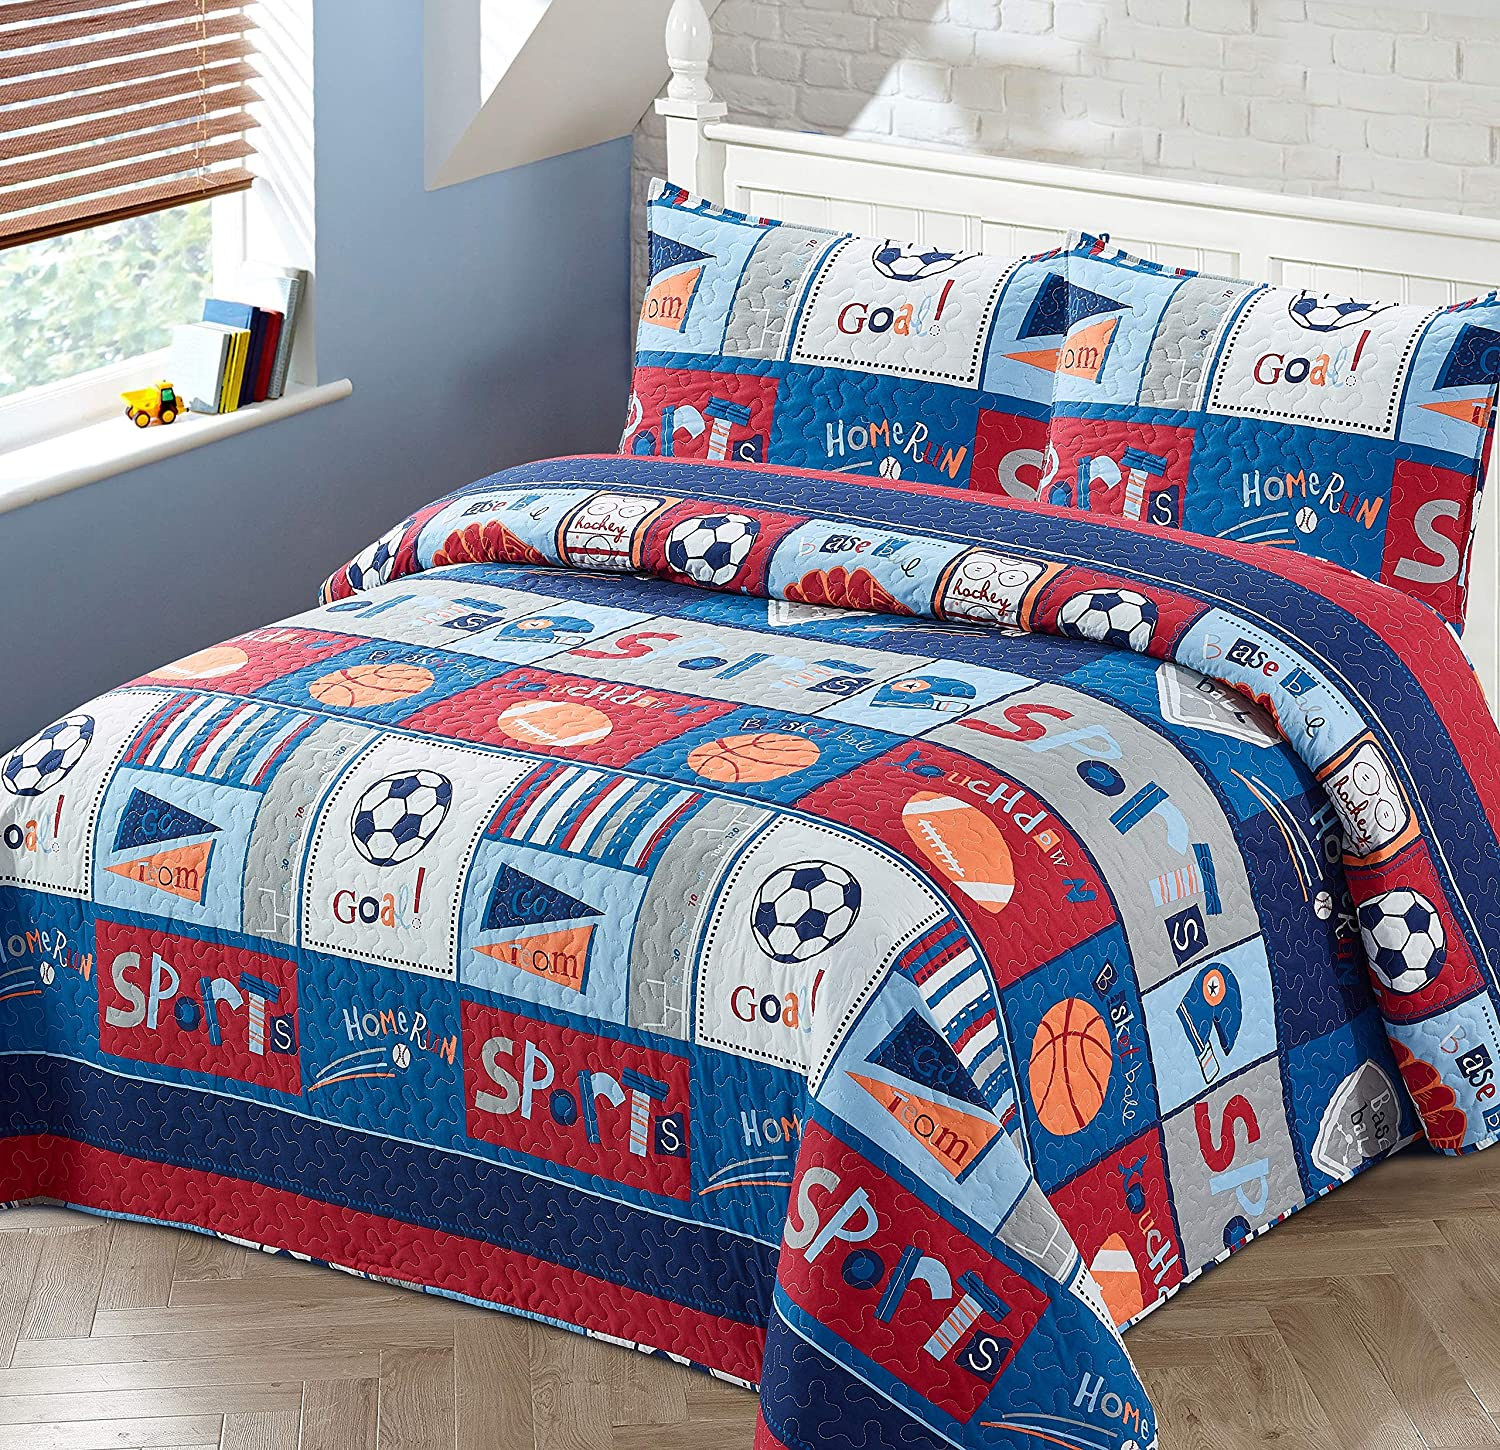 Better Home Style Red White and Blue Varsity MVP Sports Themed Kids/Boys/Toddler Coverlet Bedspread Quilt Set with Pillowcases and Football Soccer and Basketball Imagery # 2018282 (Queen/Full)